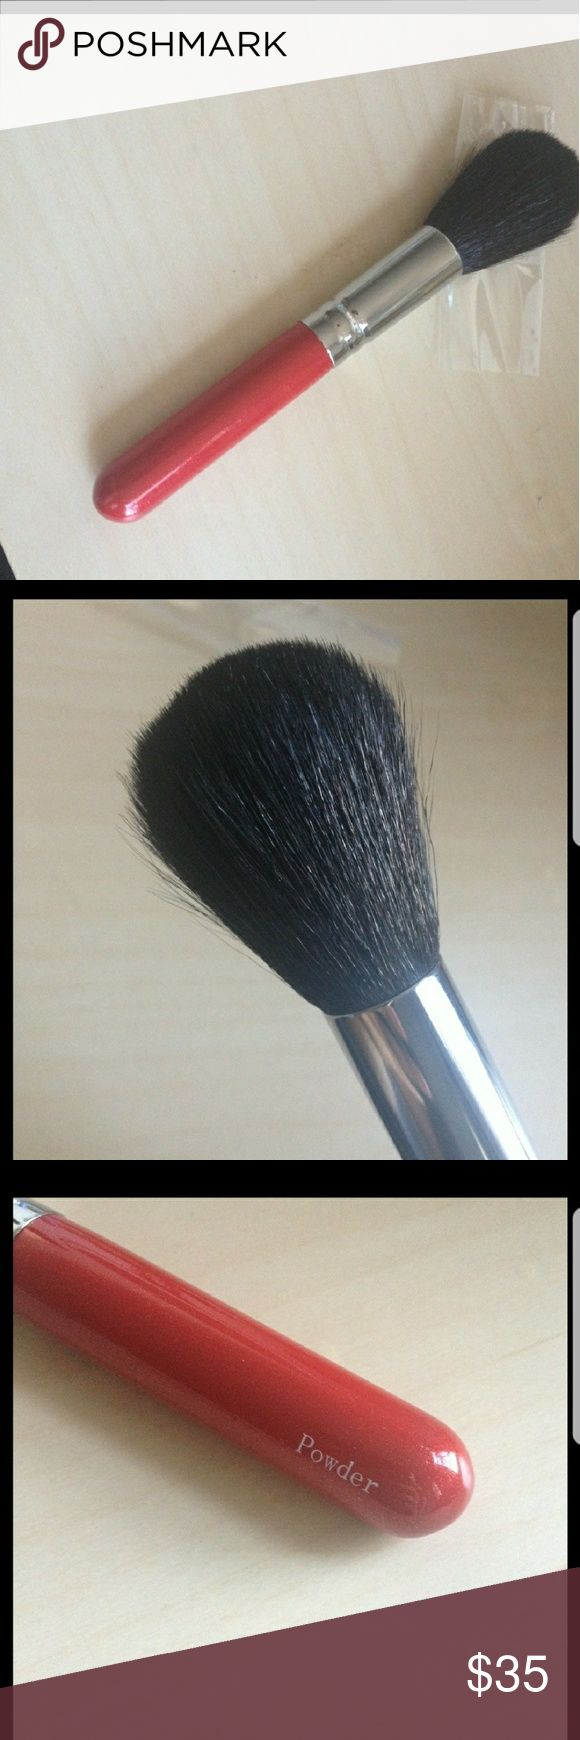 "HAKUHODO J104 POWDER BRUSH Excellent brush. I used it only a handful of times. ""Hakuhodo is a prestige makeup brush line that produces brushes under its own name, but it is also an OEM (original equipment manufacturer), which means it will create brushes to another company's specifications. For instance, it is rumored that Tom Ford's brushes are manufactured by Hakuhodo.""  ""For those most familiar with MAC brushes, this is most comparable toMAC's 150."" HAKUHODO Makeup Brushes & Tools"